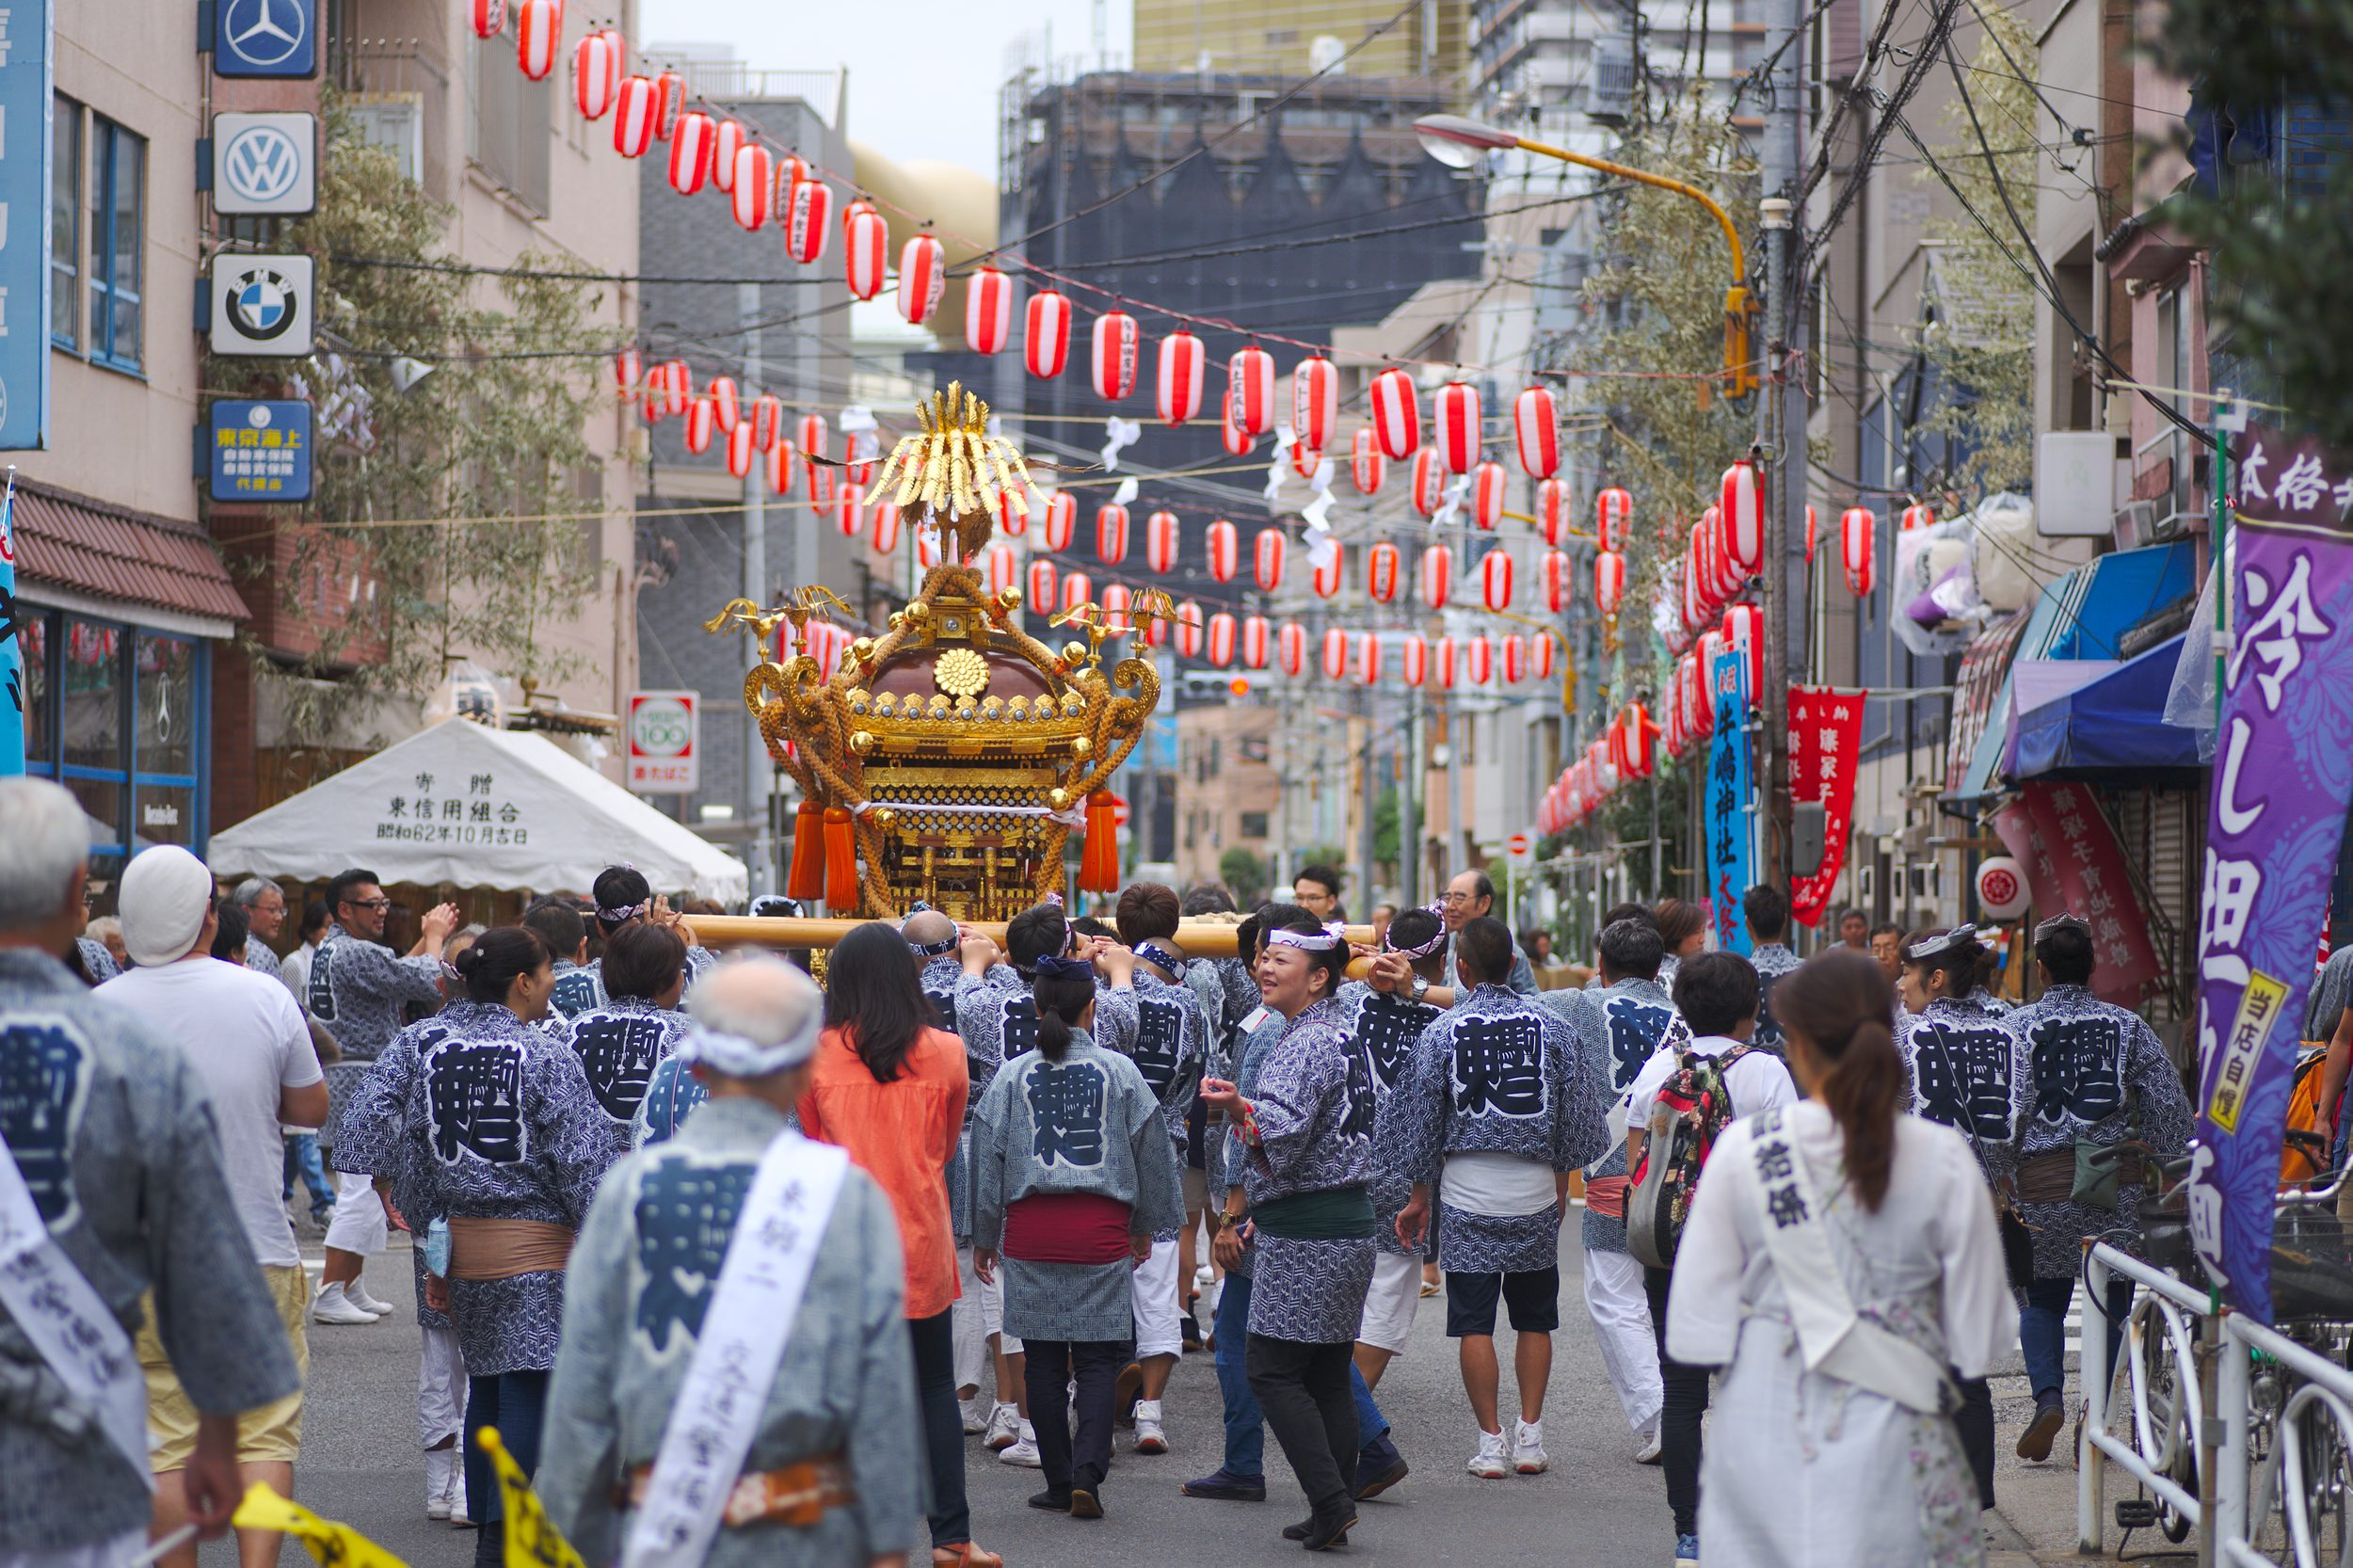 People carrying a mikoshi, red lamps hanging over them